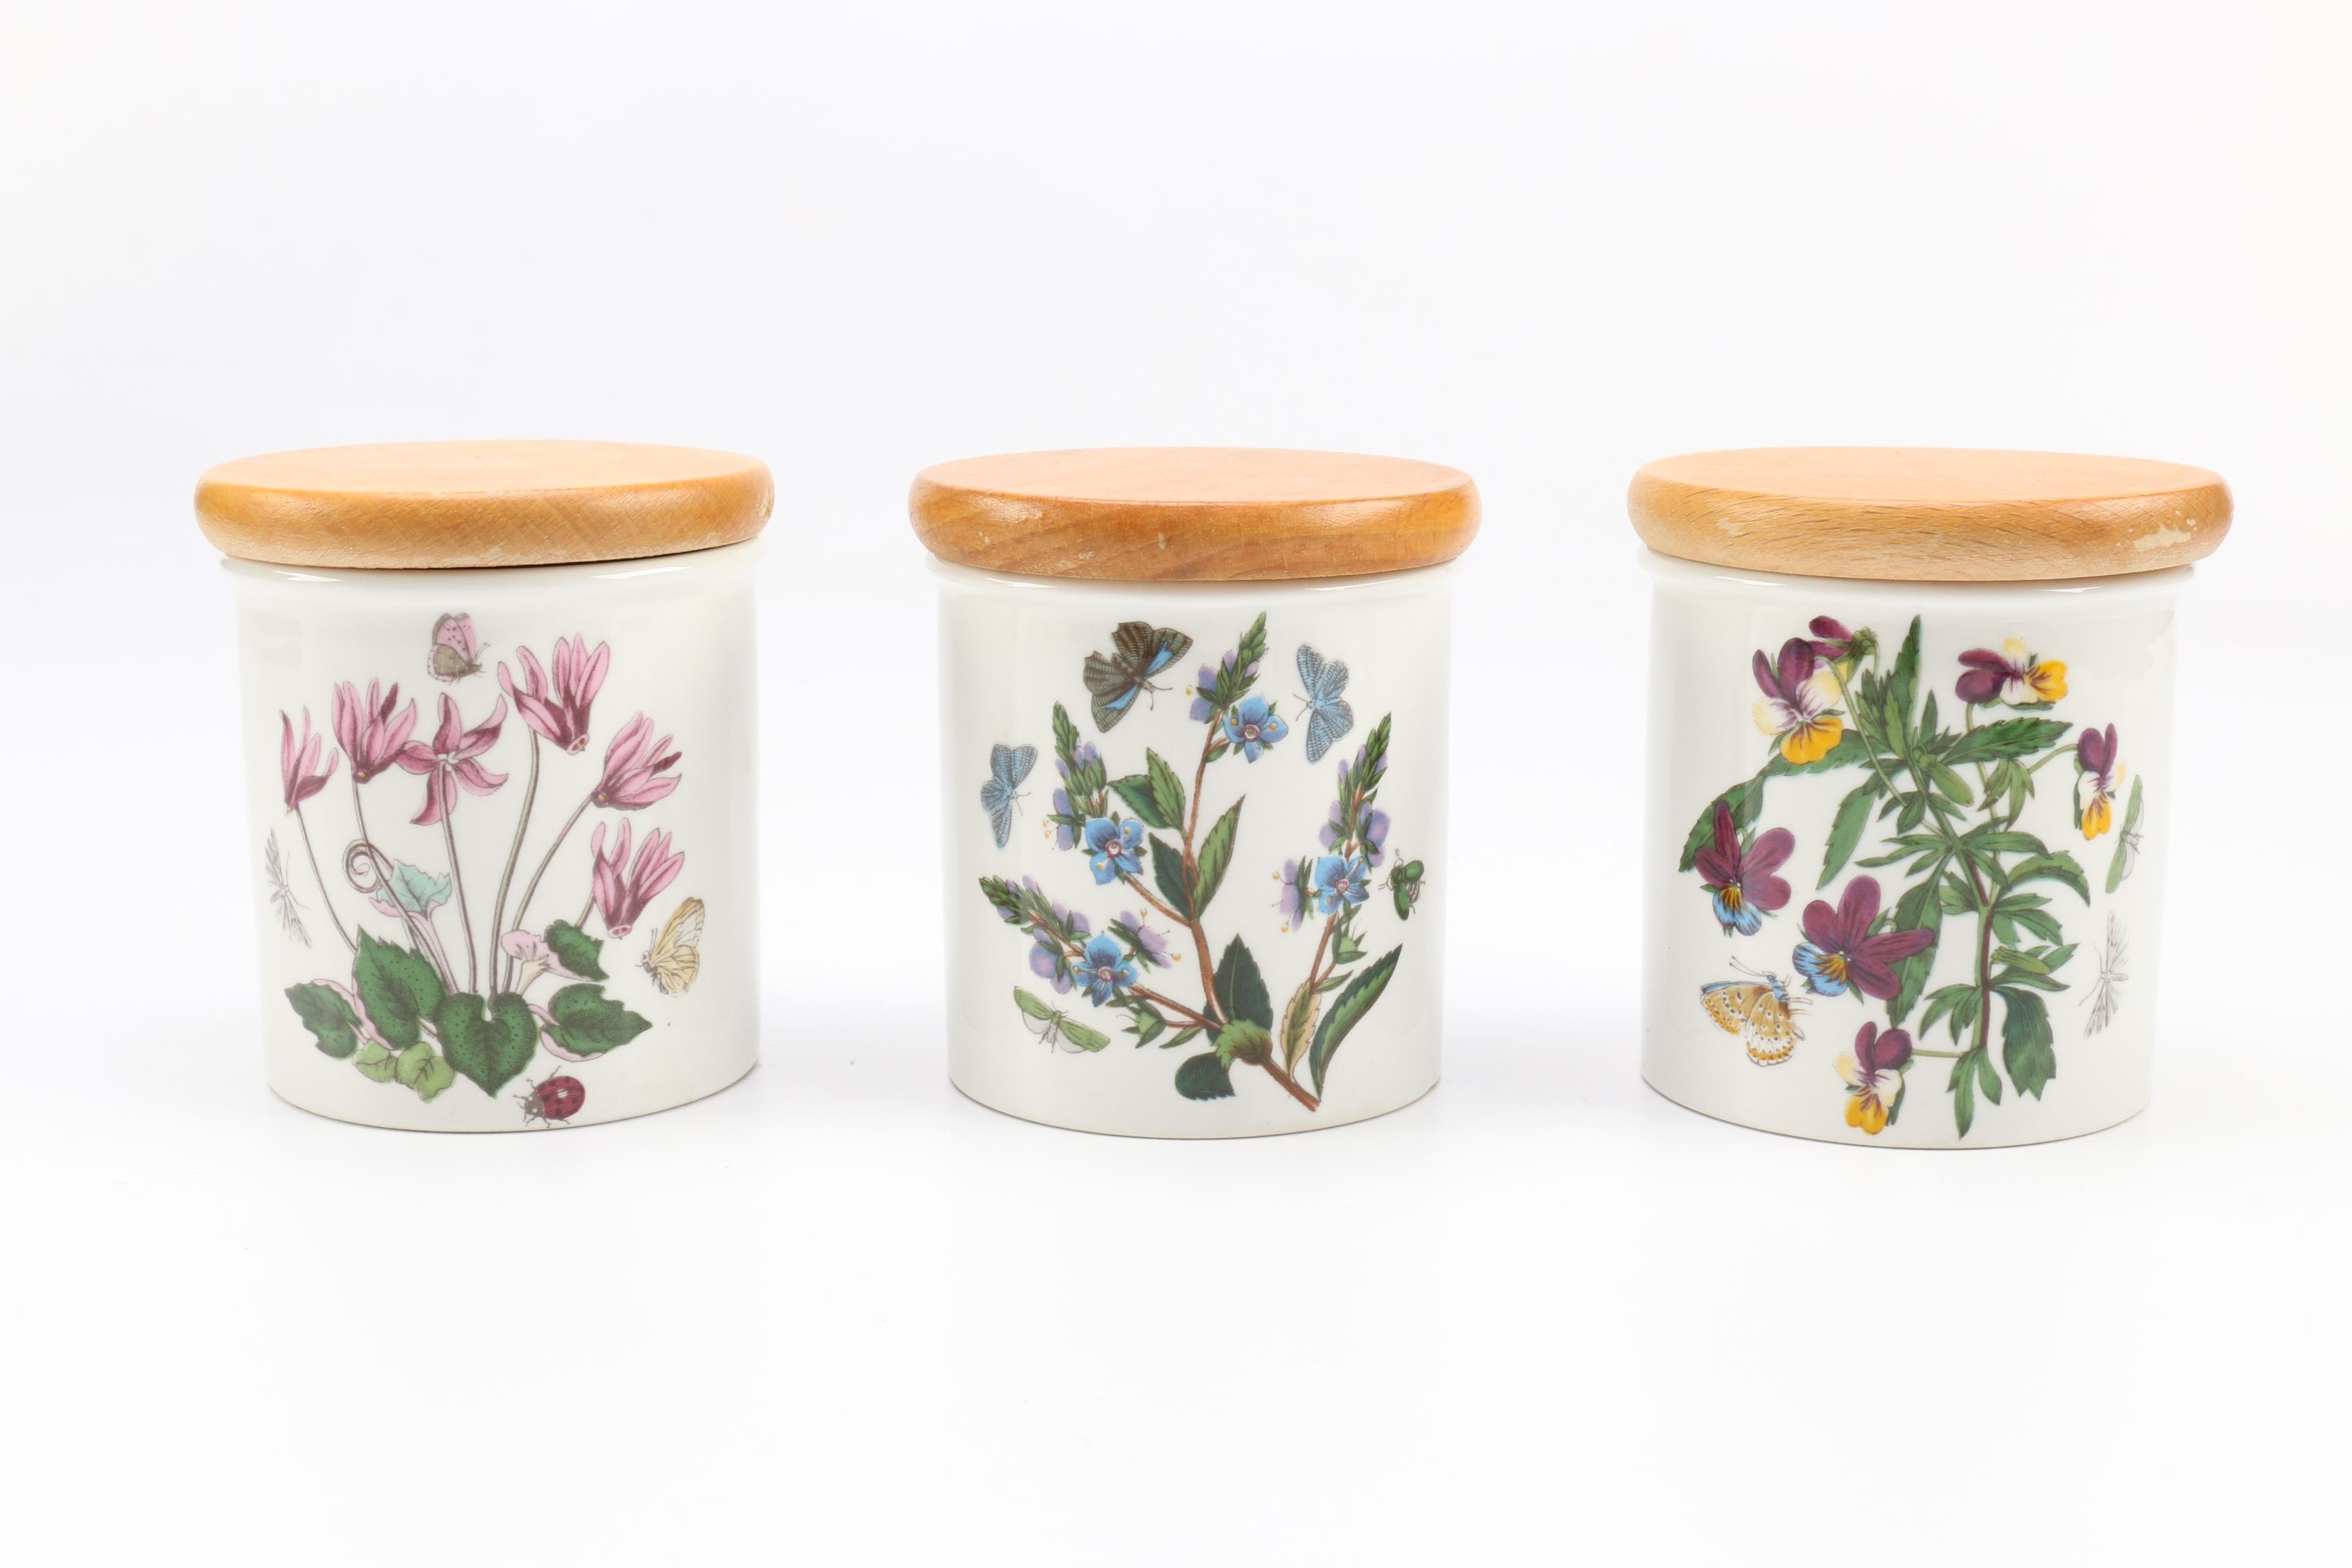 Purple Kitchen Canisters Portmeirion Botanical And Fruit Themed Ceramic Canisters